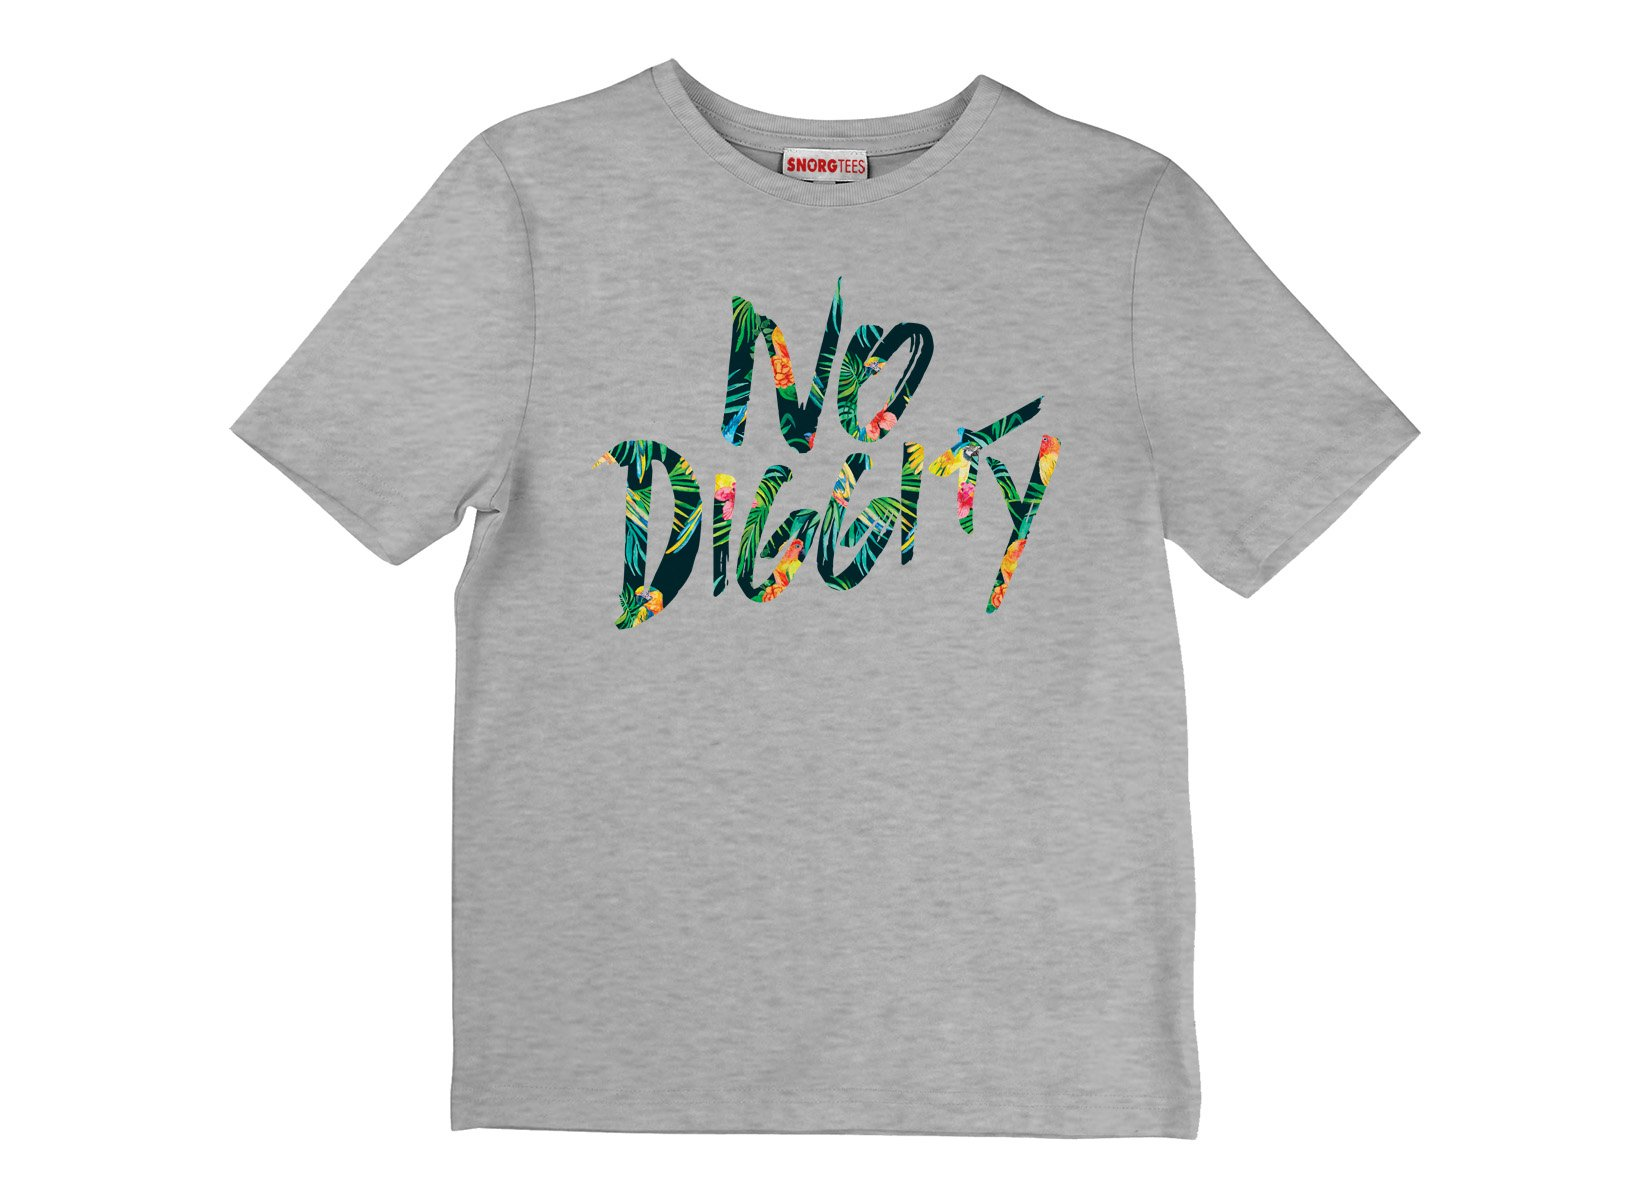 No Diggity on Kids T-Shirt